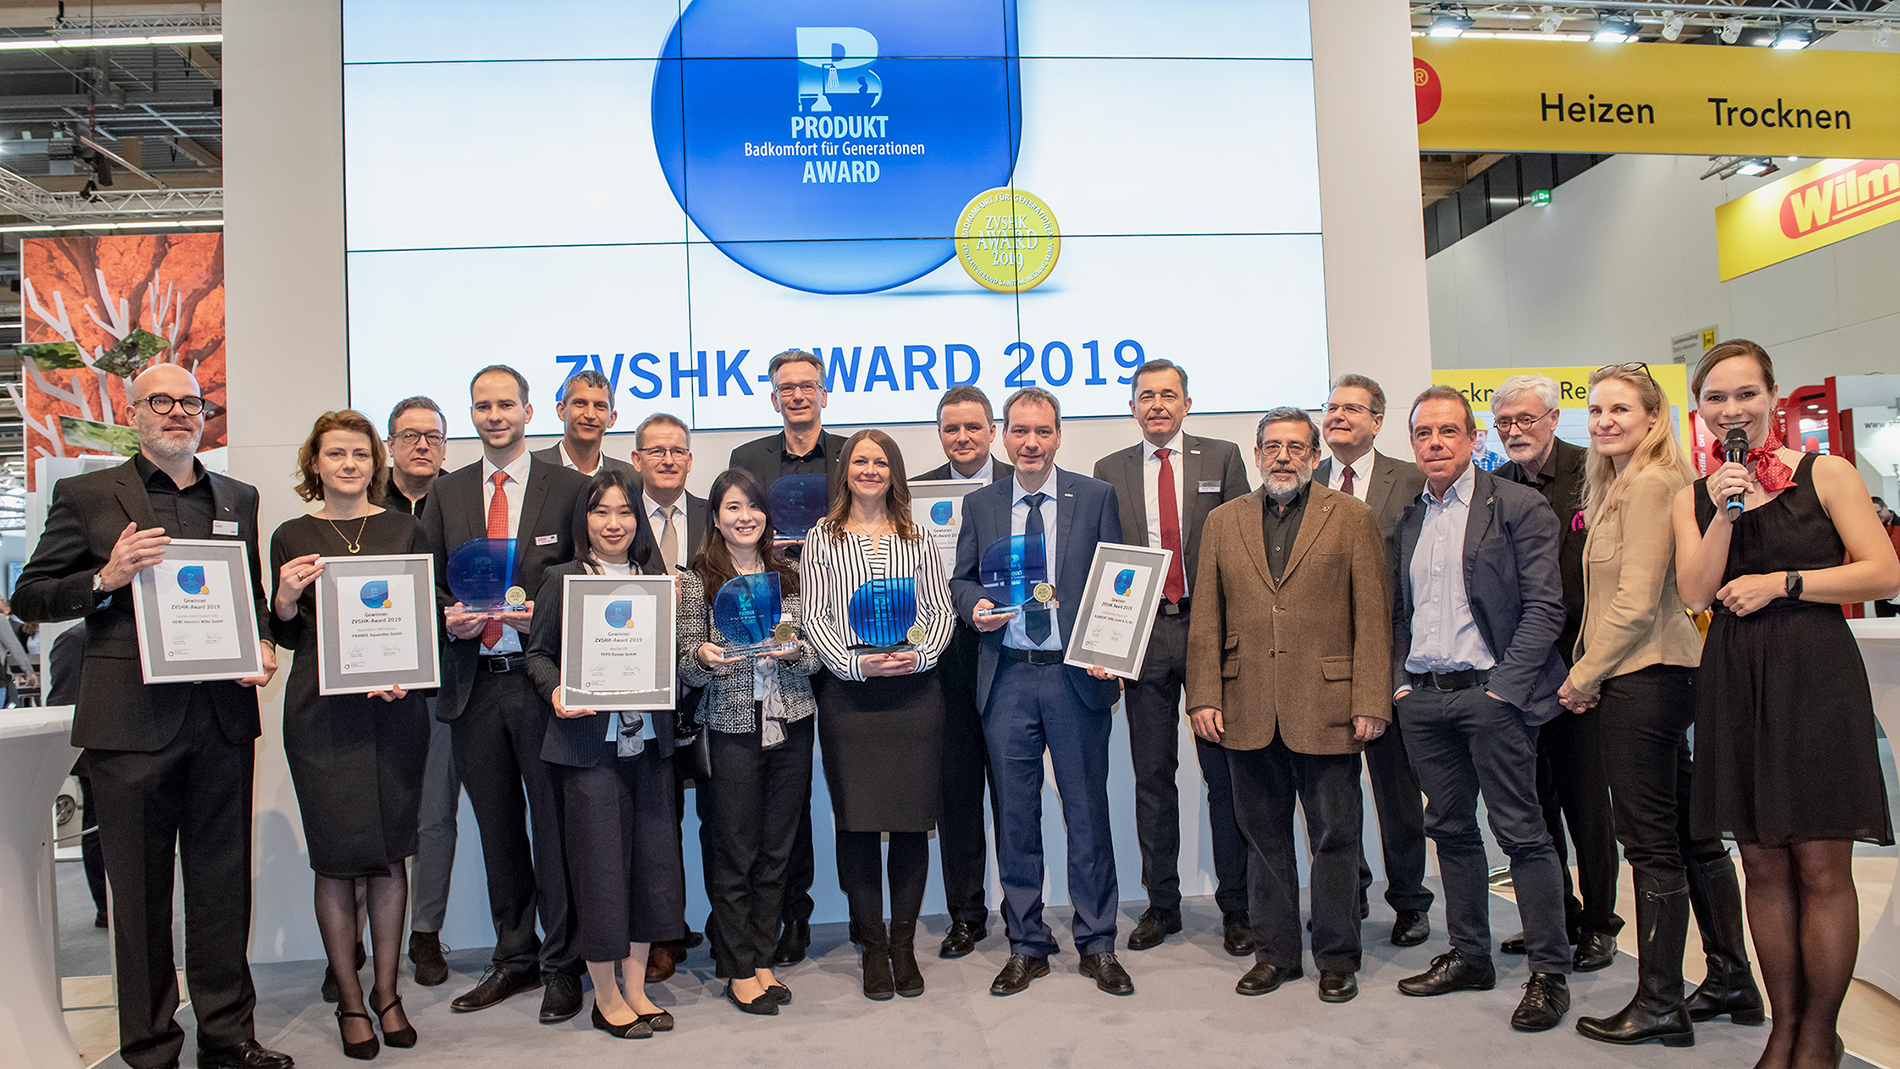 Winners of ZVSHK product award 2019